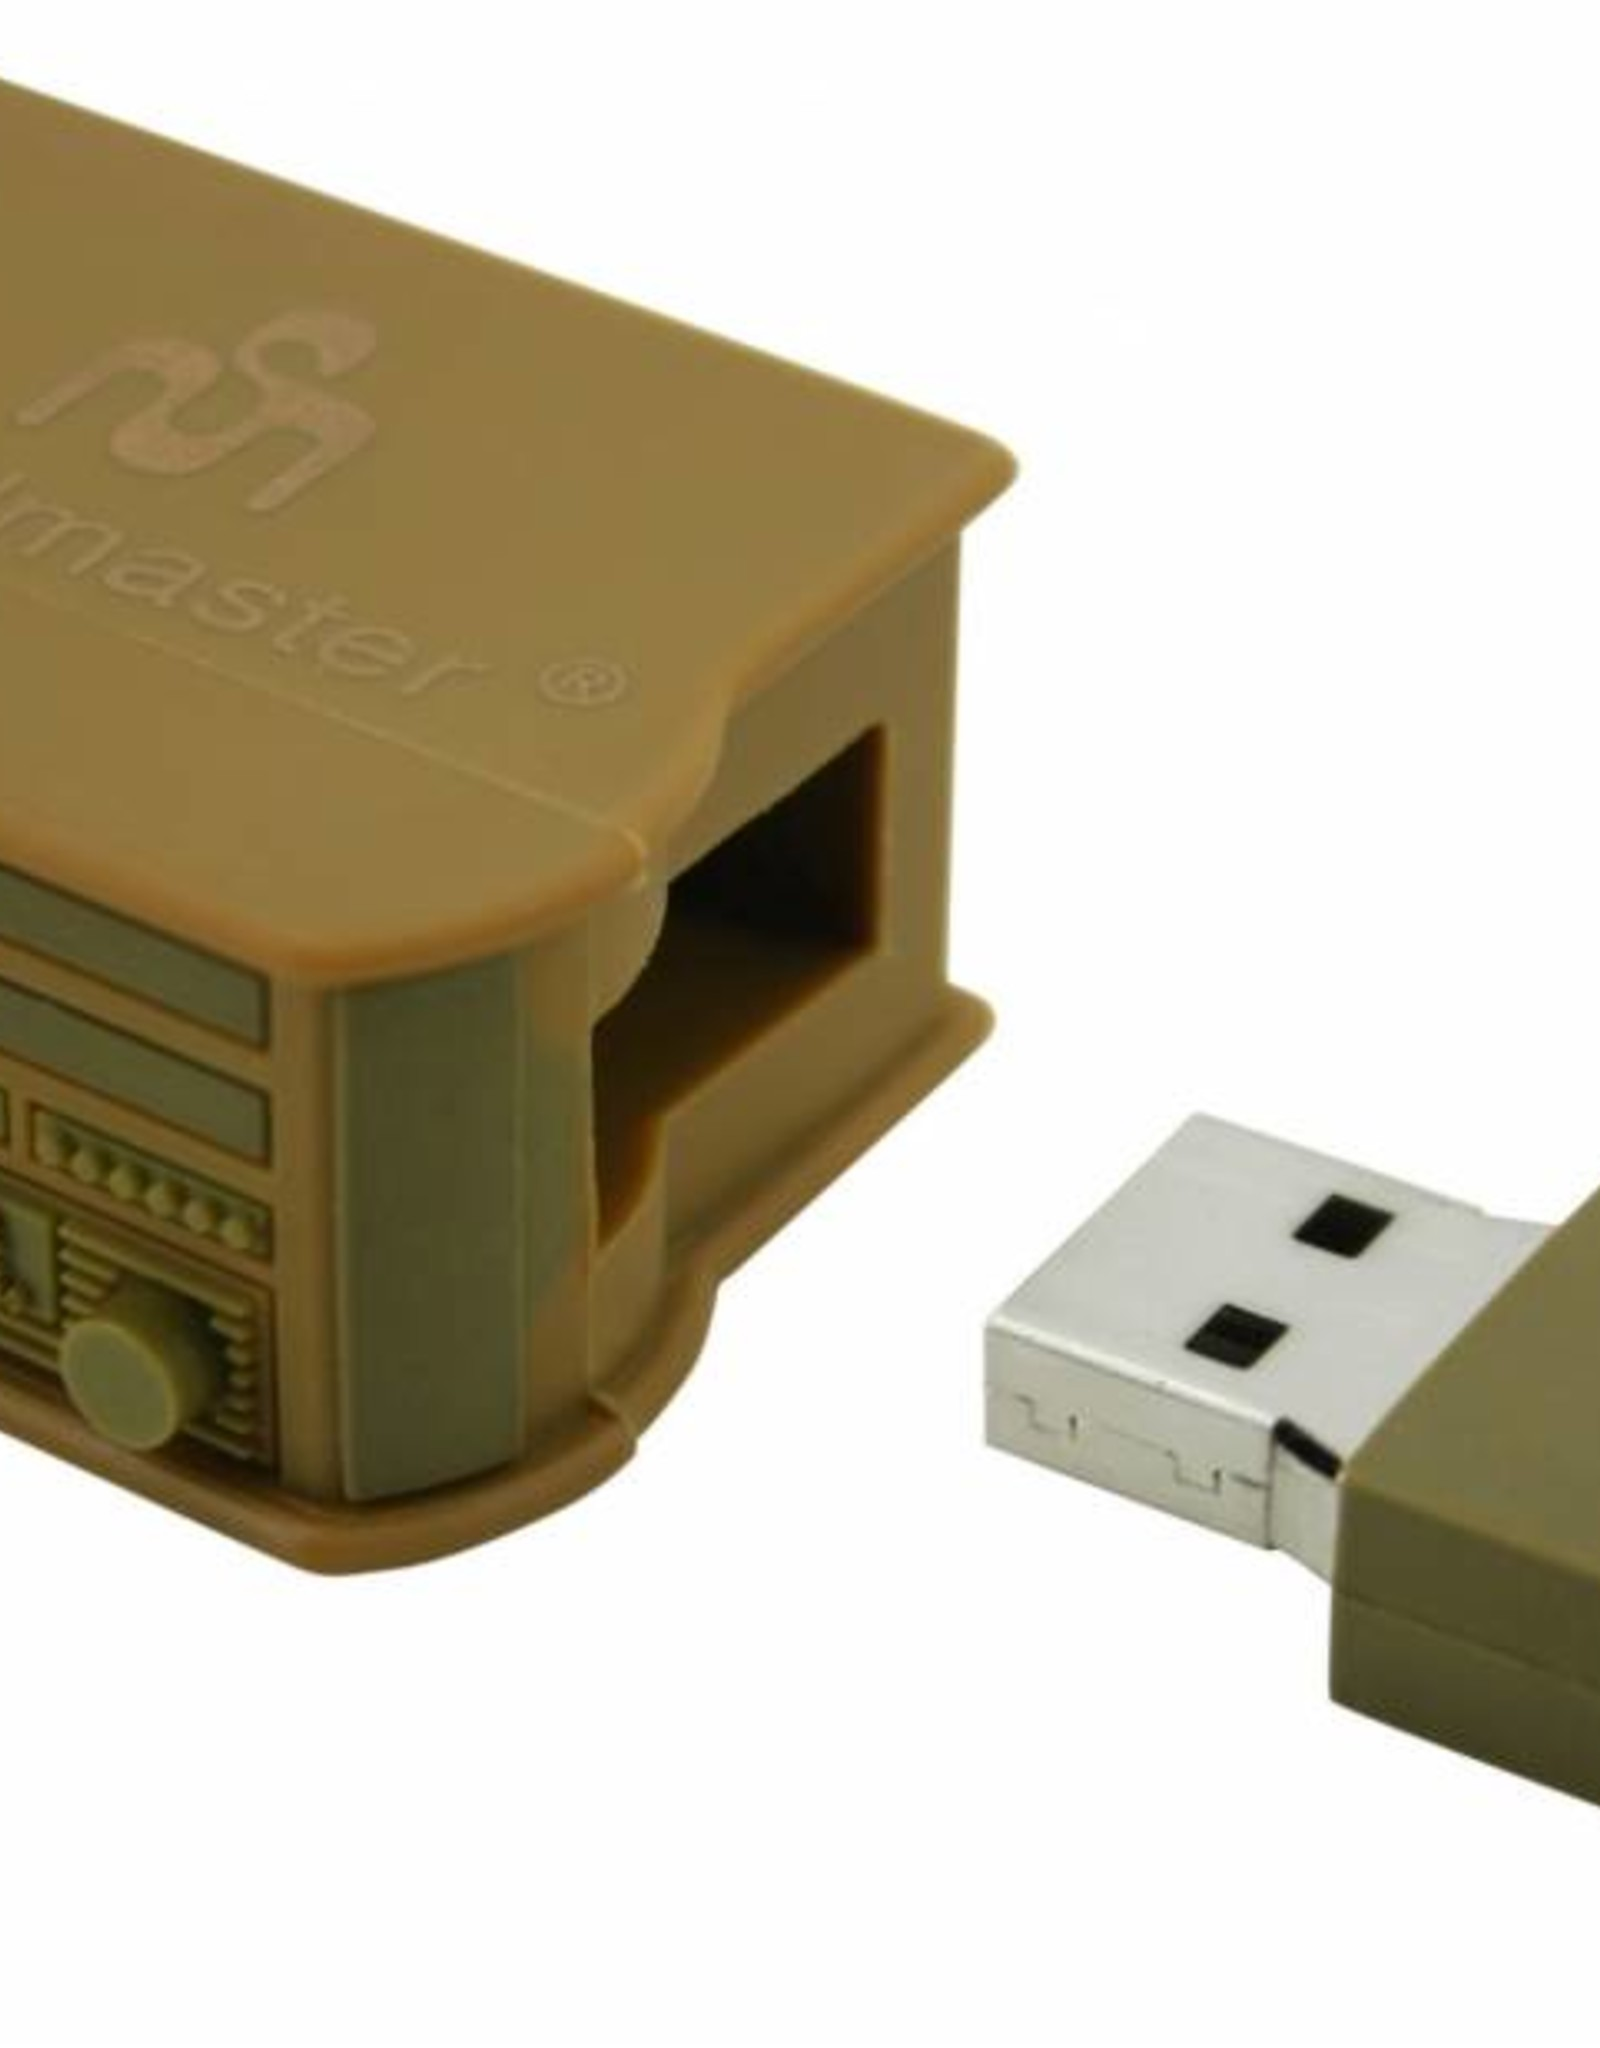 Soundmaster USB-stick NR5U